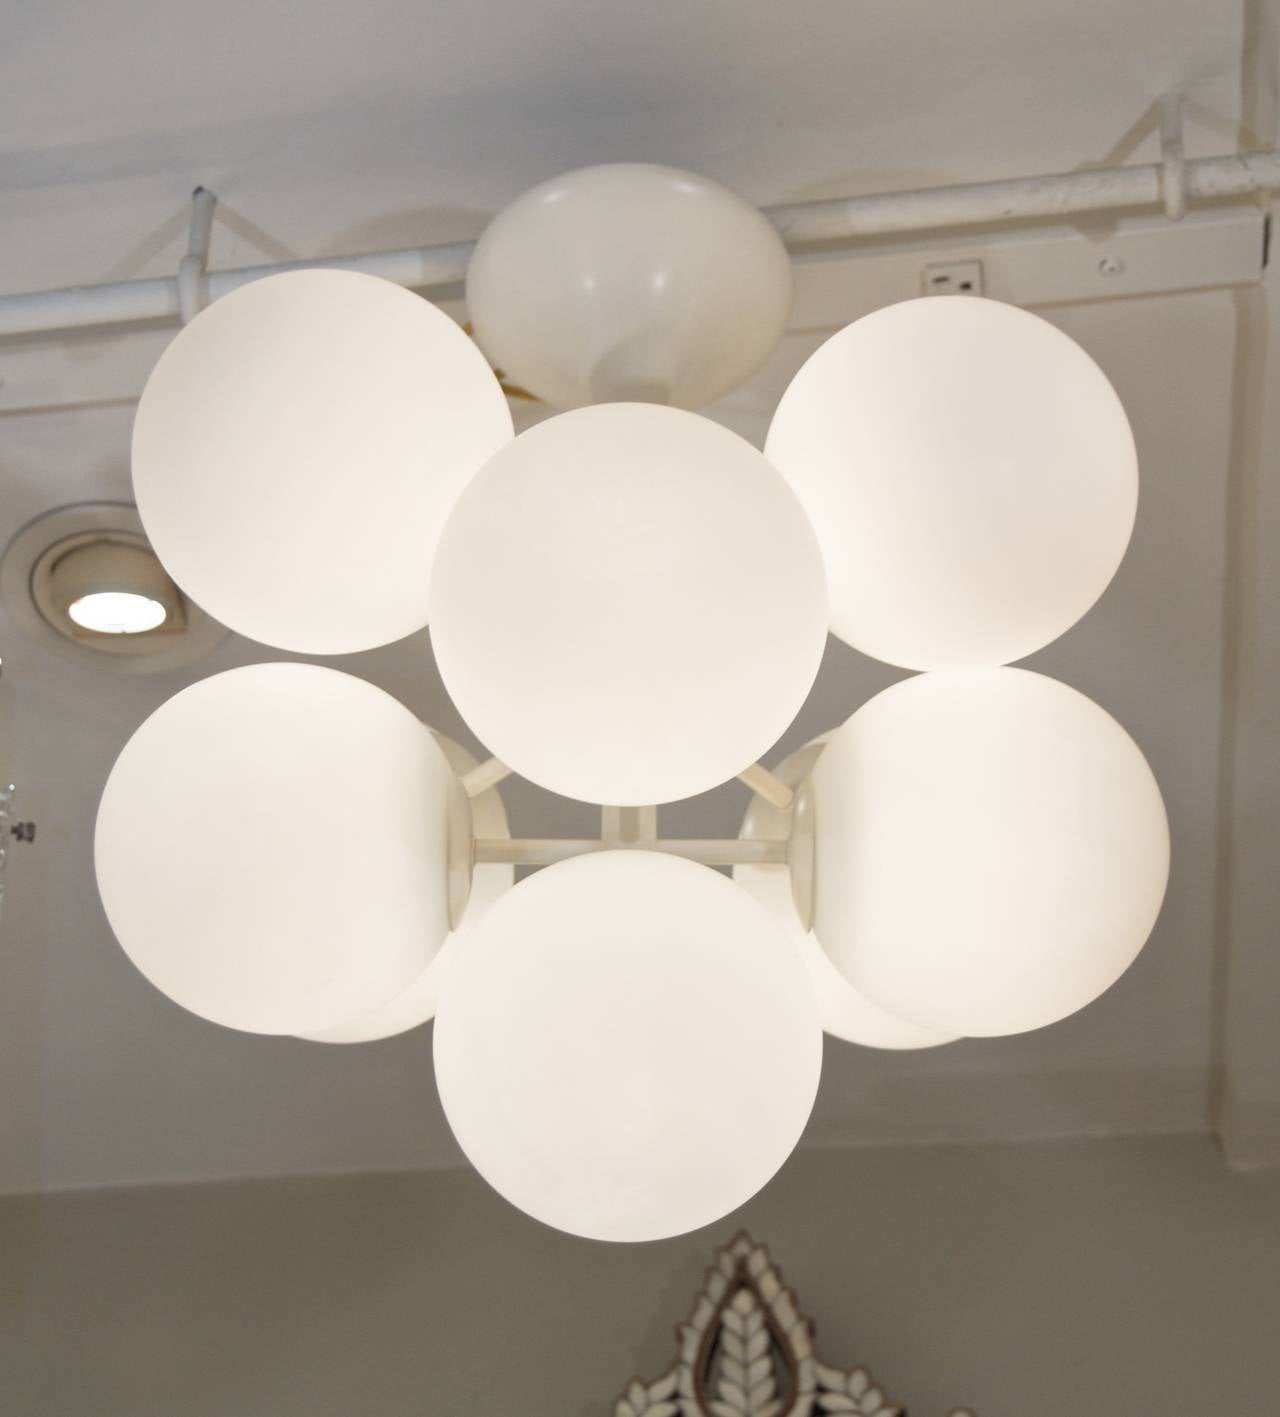 chandelier globes rec modo for rectangle